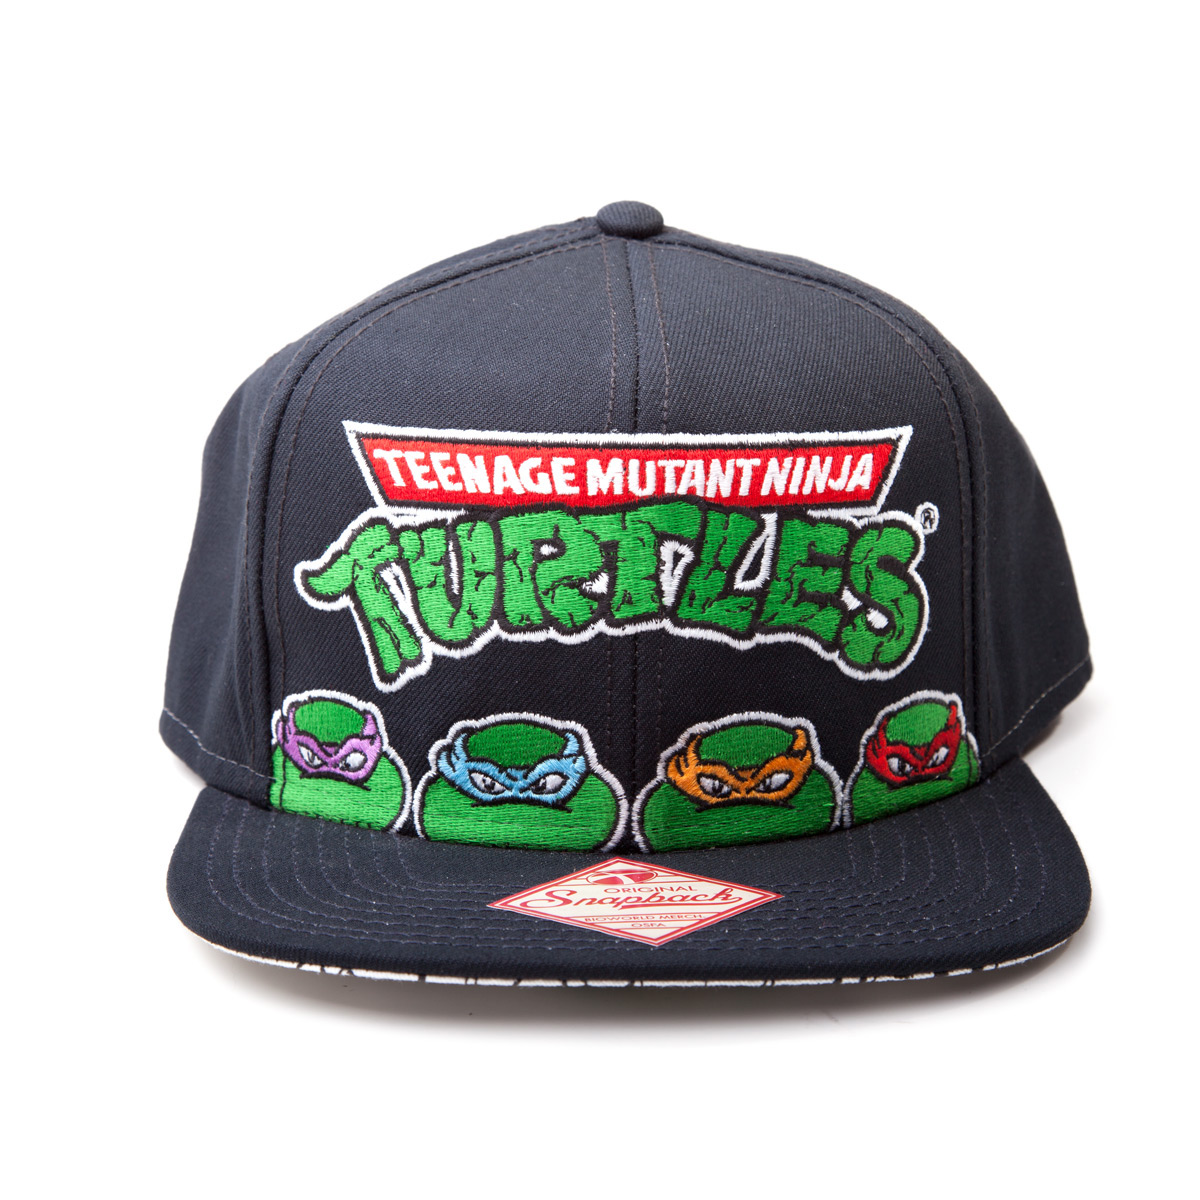 30aa1ef841c Teenage Mutant Ninja Turtles - TMNT Snapback - Darkside Central